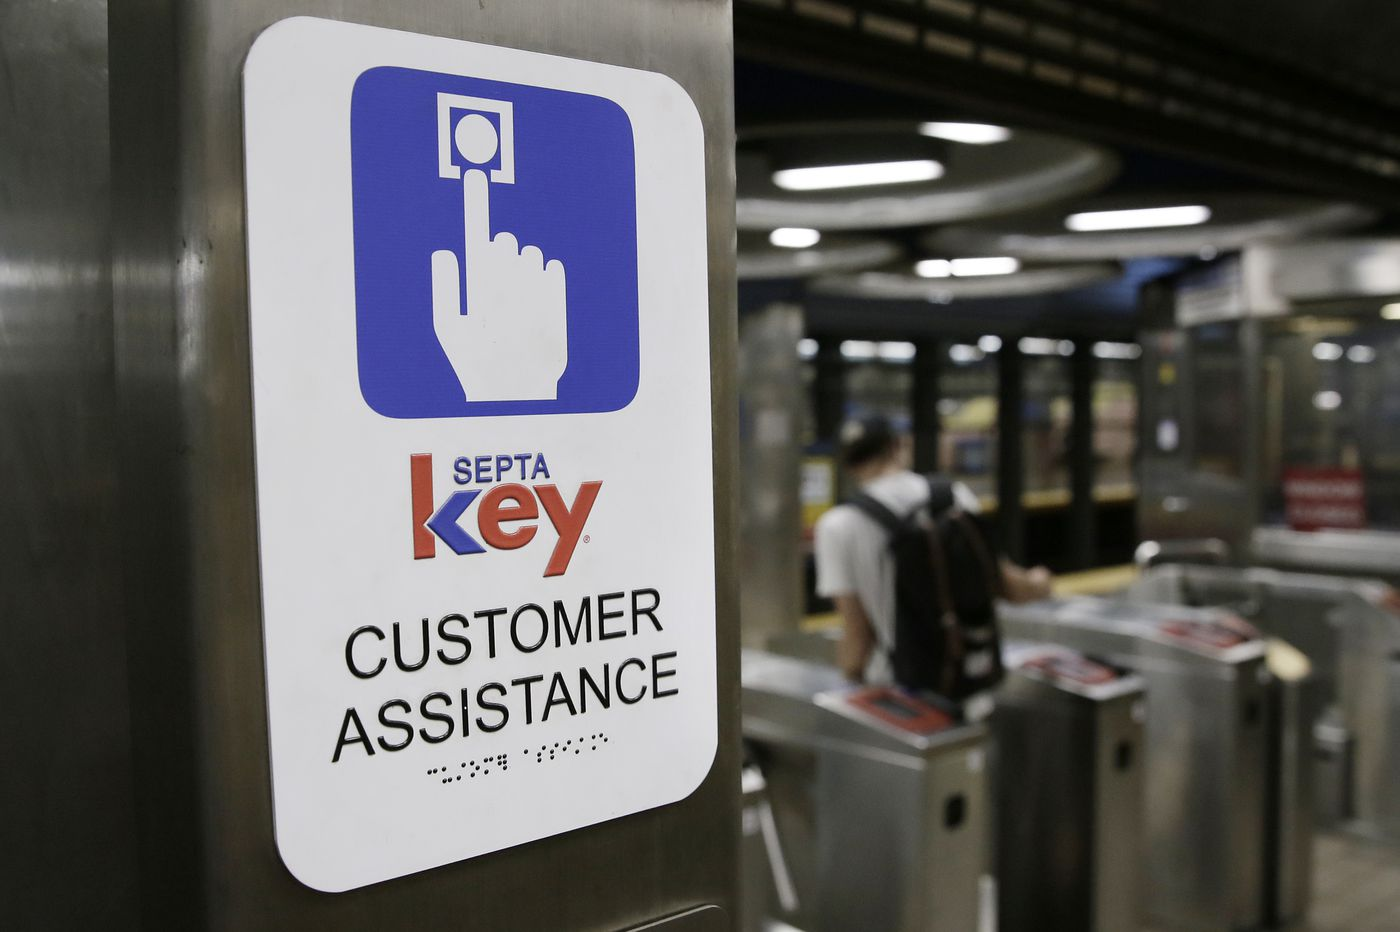 Thousands of SEPTA Key cards are about to expire. Here's how to keep your money.